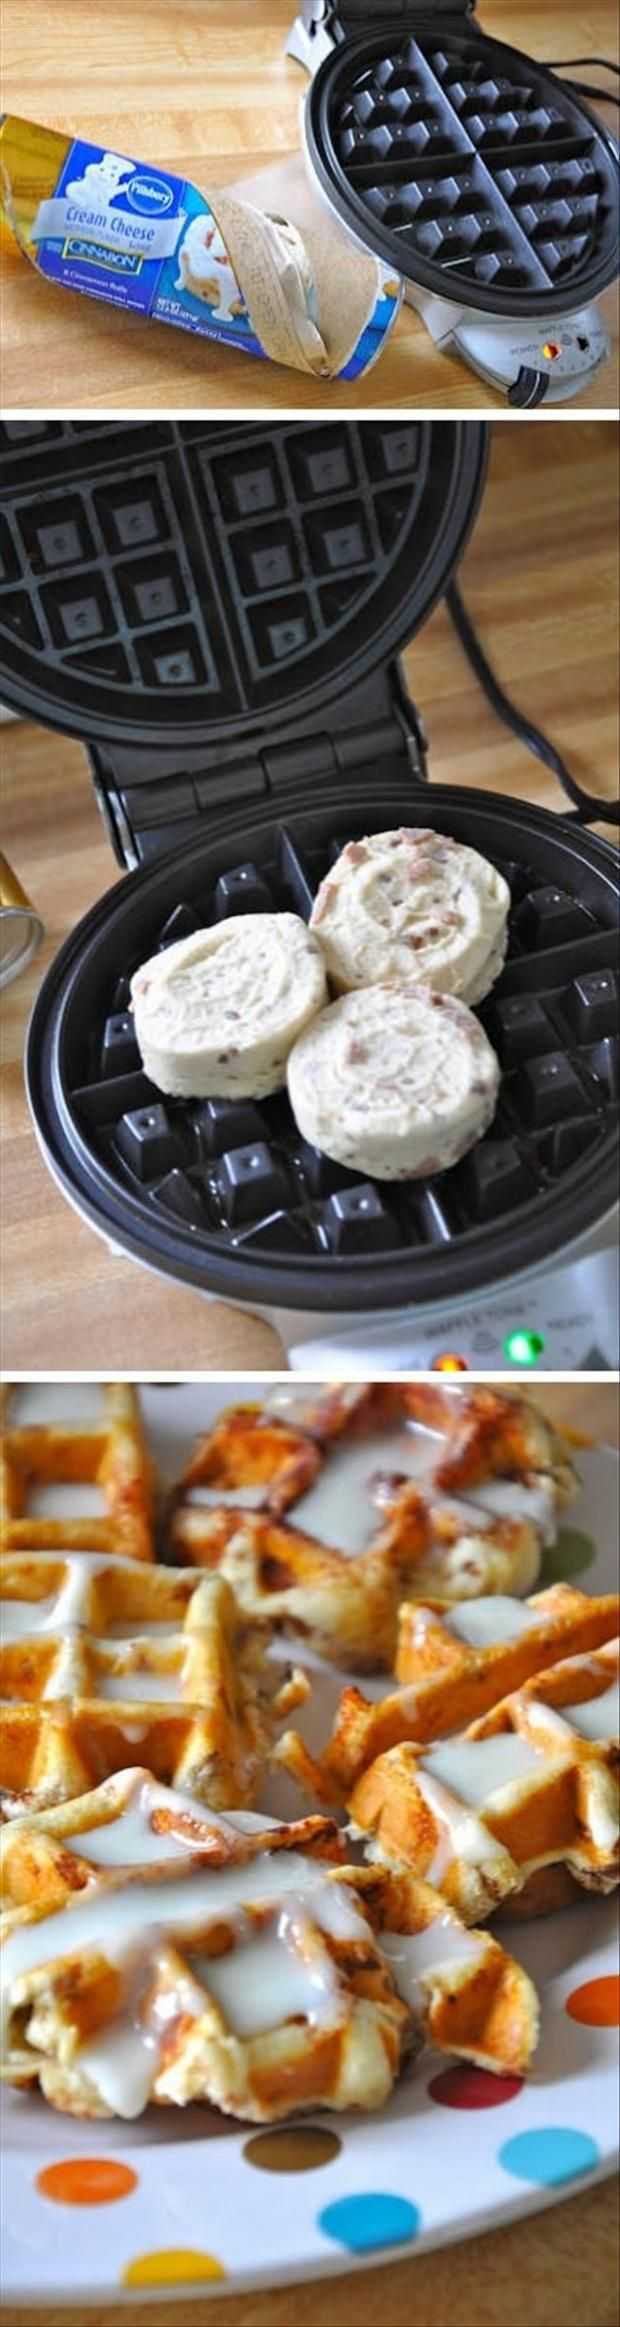 best idea ever!  canned cinnamon rolls cooked in a waffle maker...quickly and deliciously